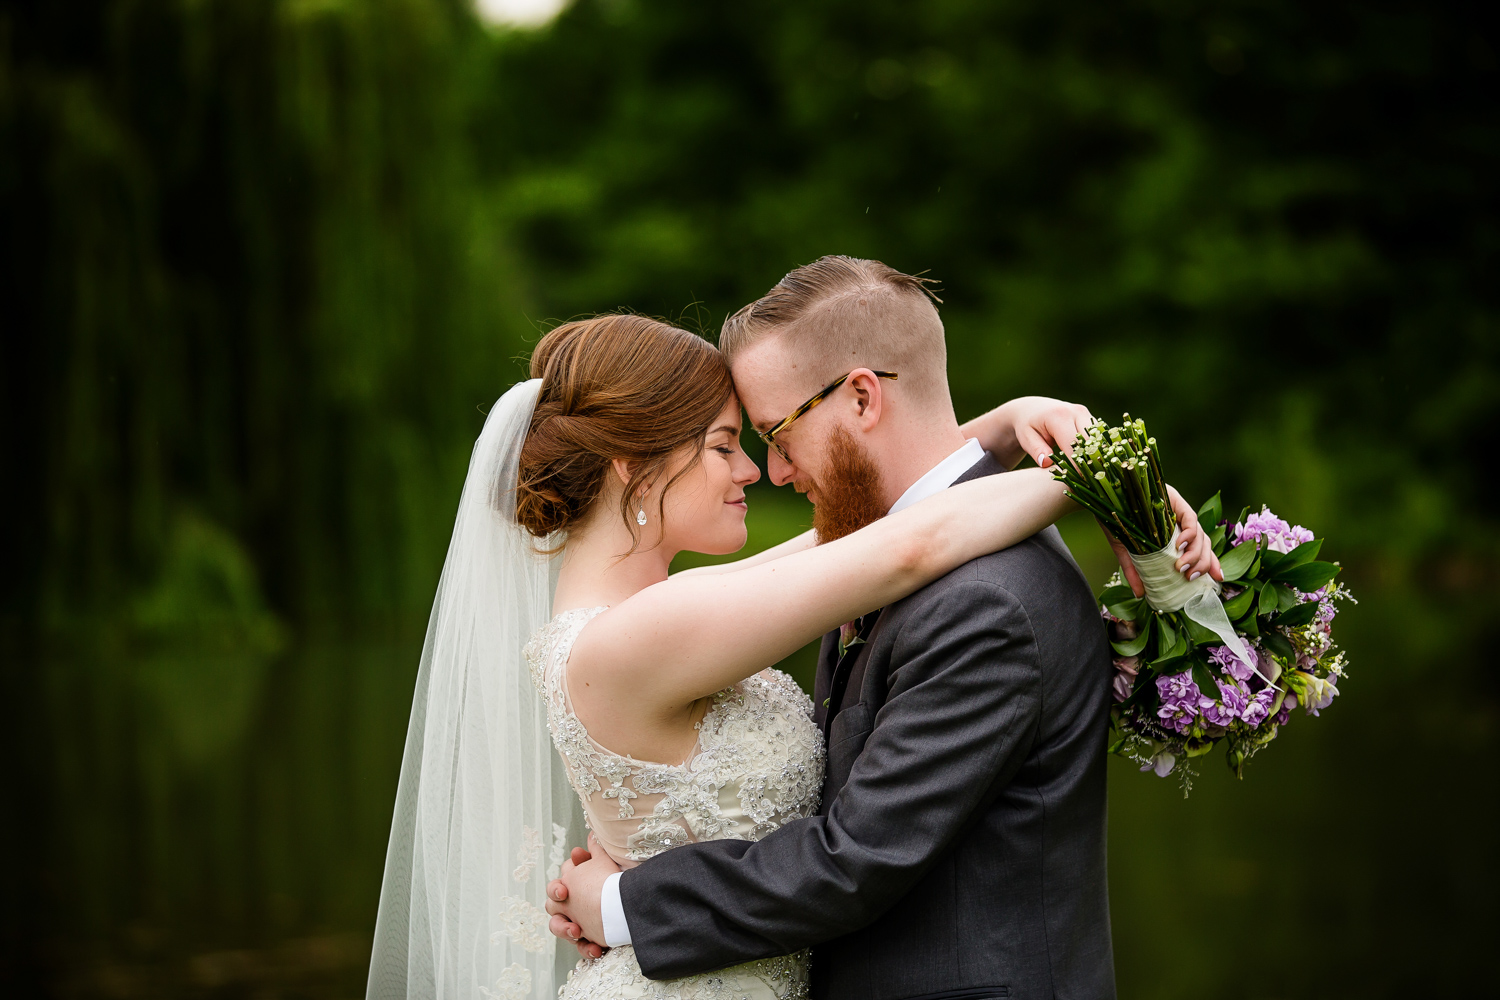 Bride and groom at University of Illinois Arboretum